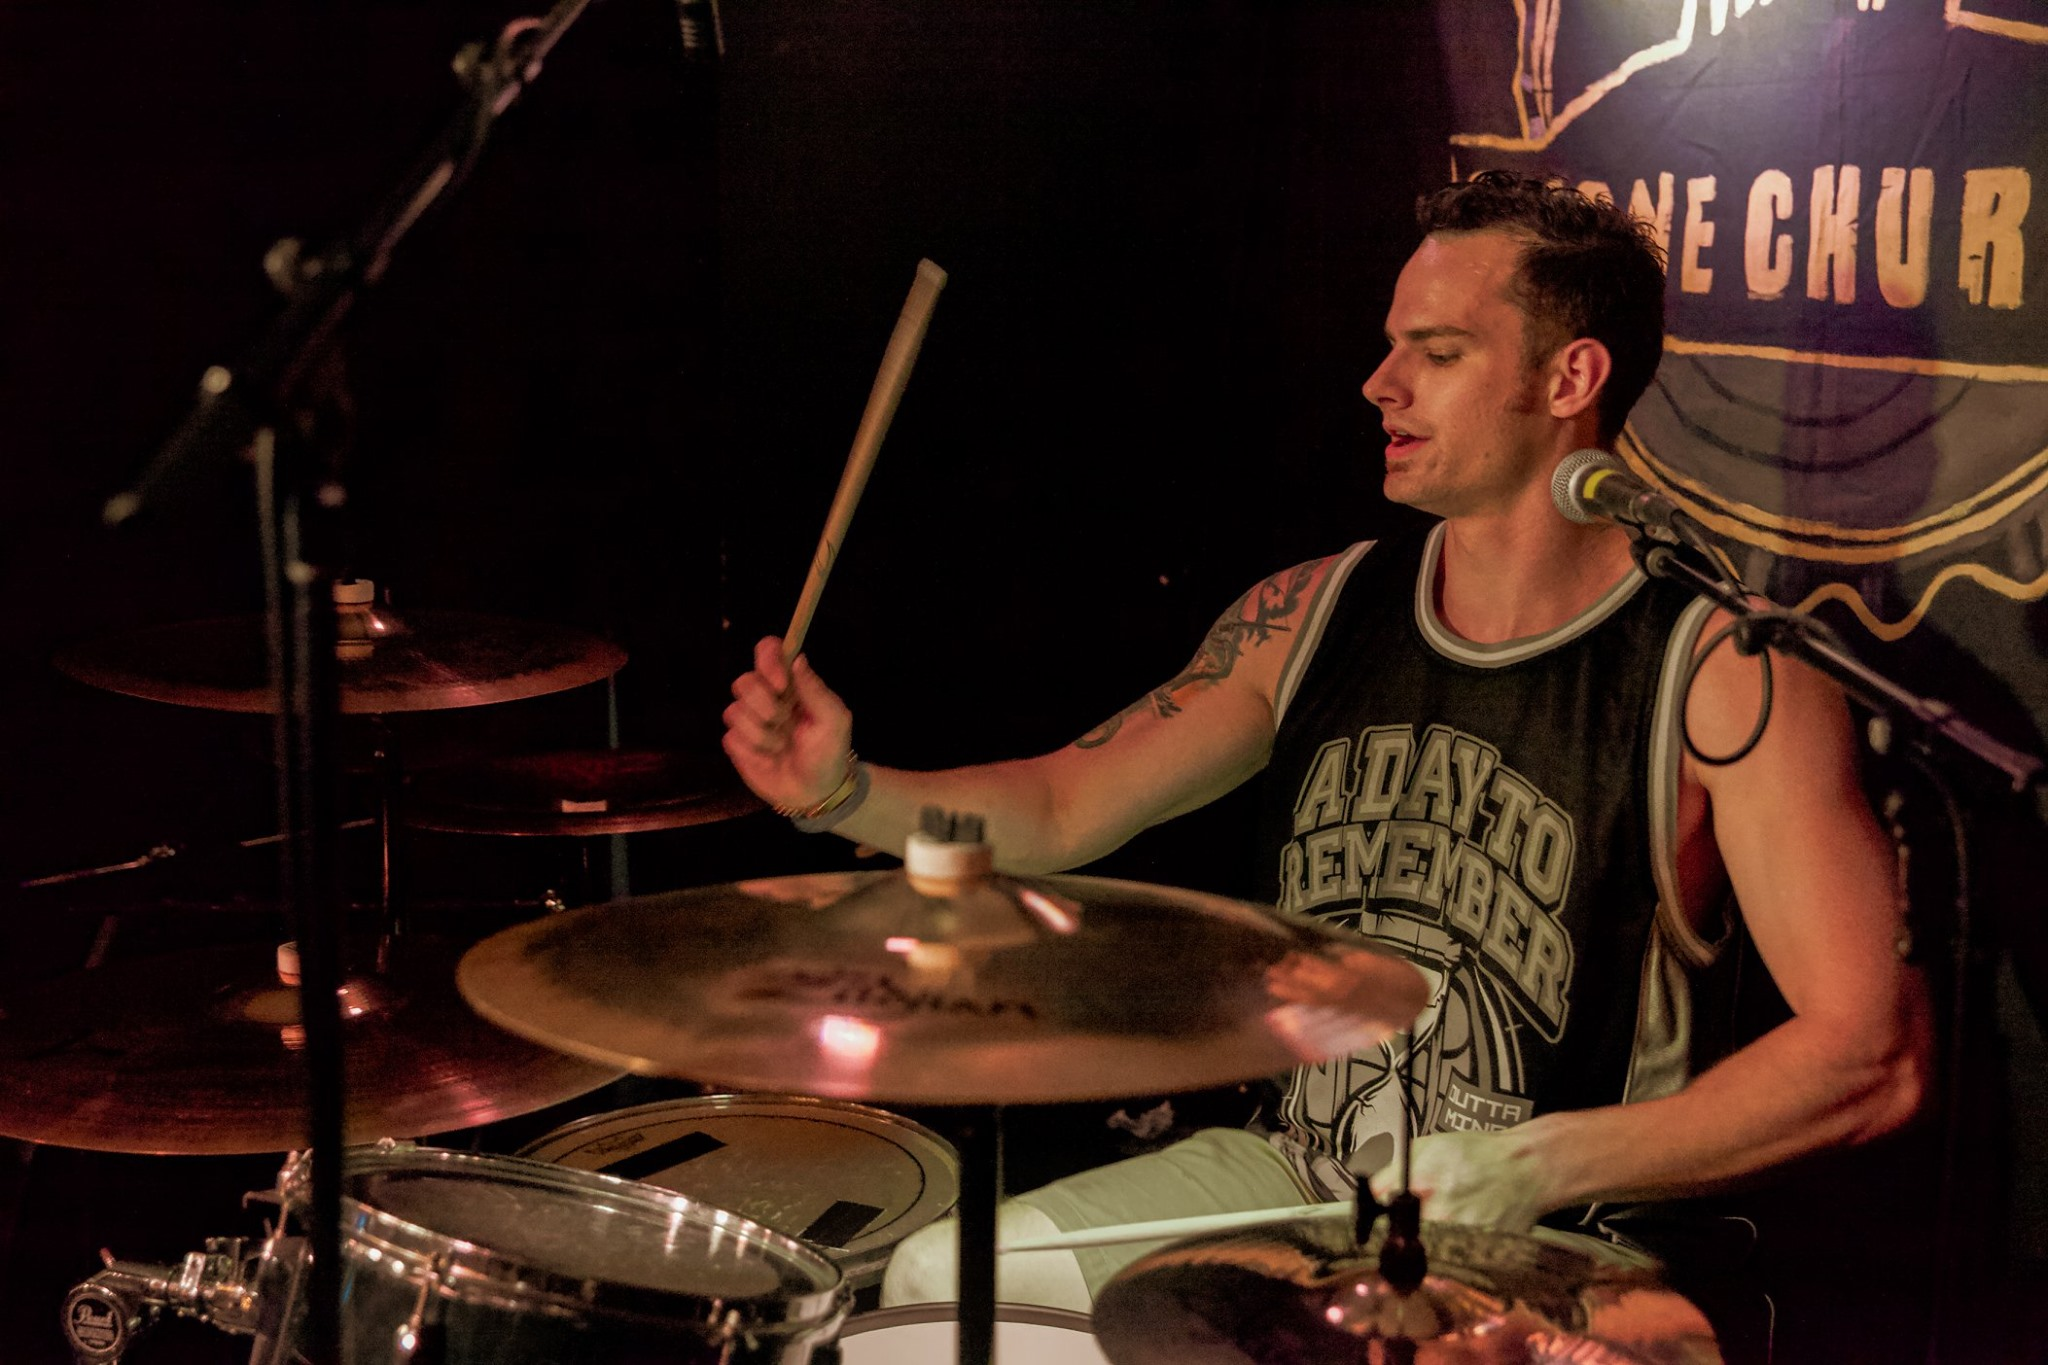 Not30's Drummer - Mark Thompson   Photo by French's Fried Photos @frenchsfriedphotos